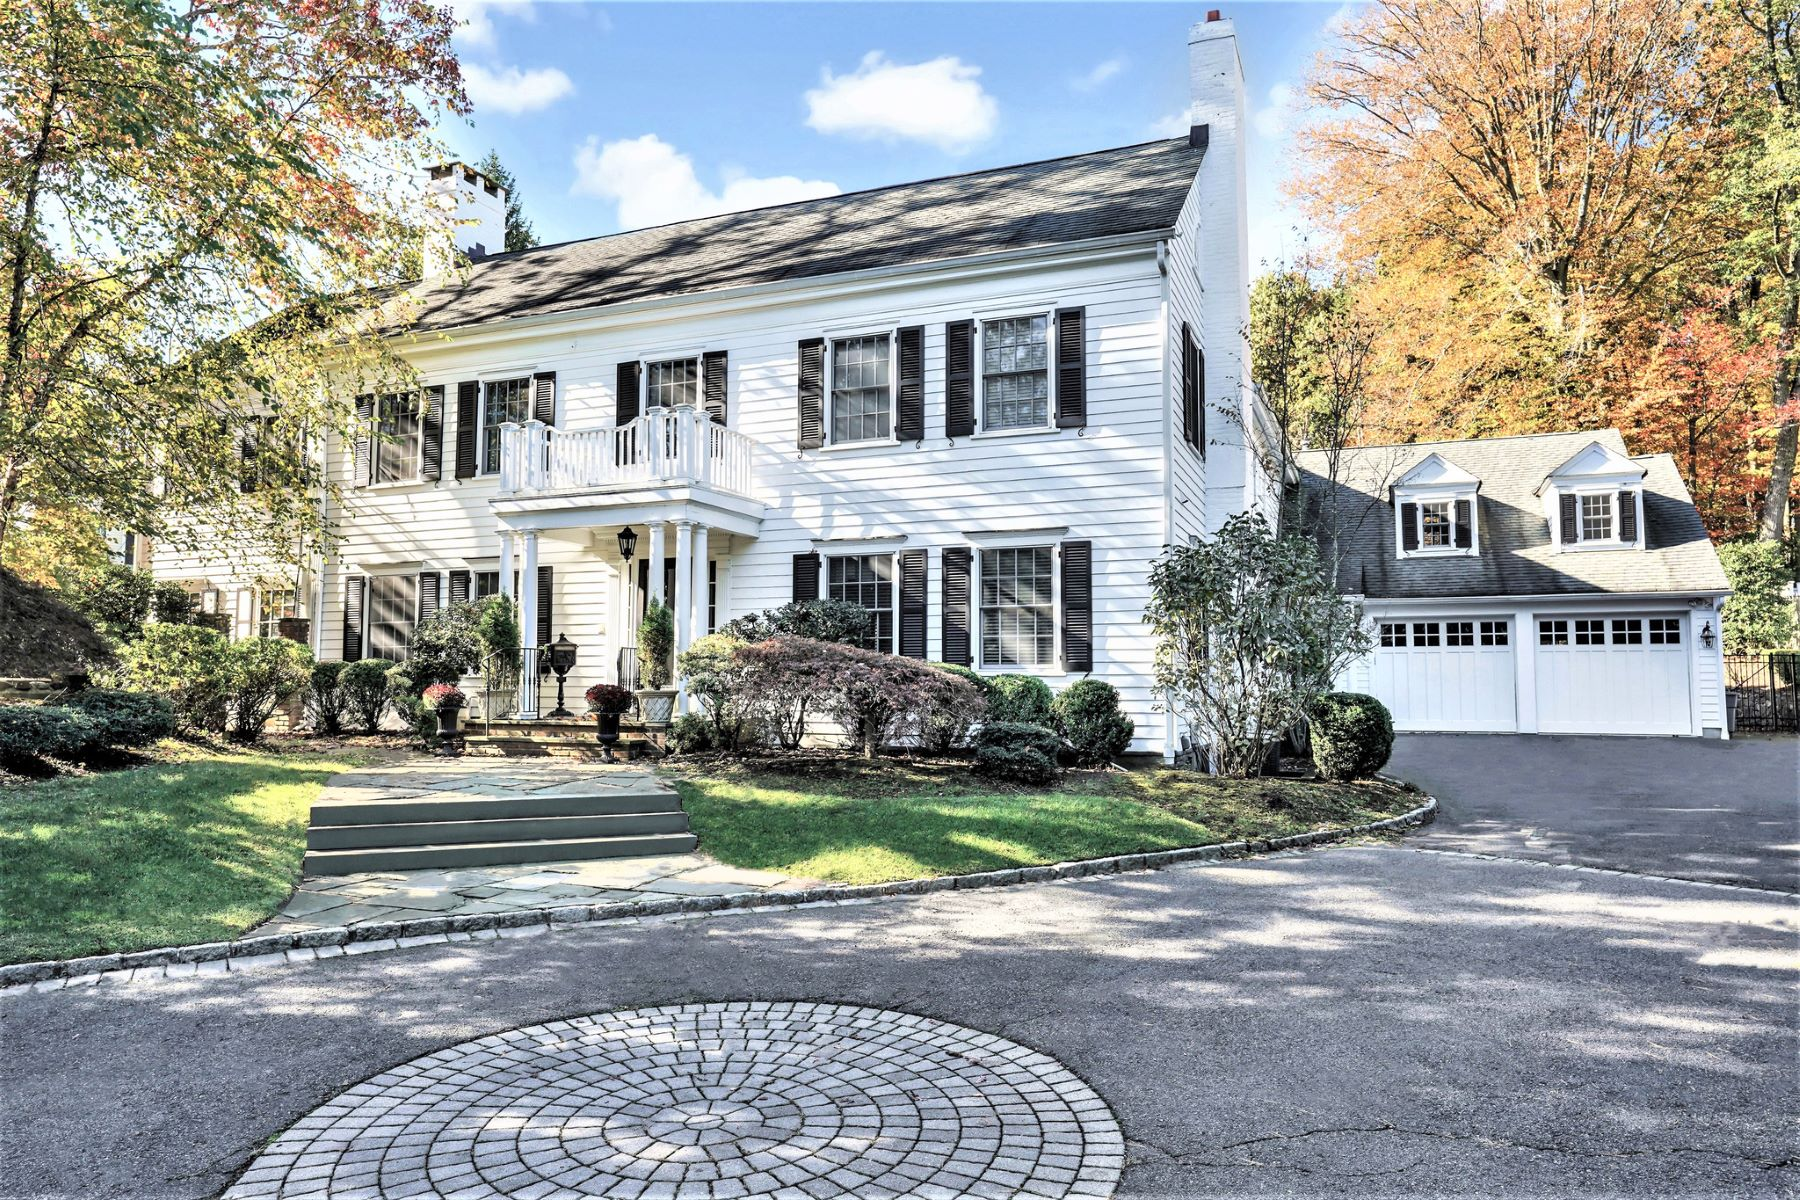 Single Family Homes for Sale at Classic Elegance 195 Highland Avenue, Short Hills, New Jersey 07078 United States